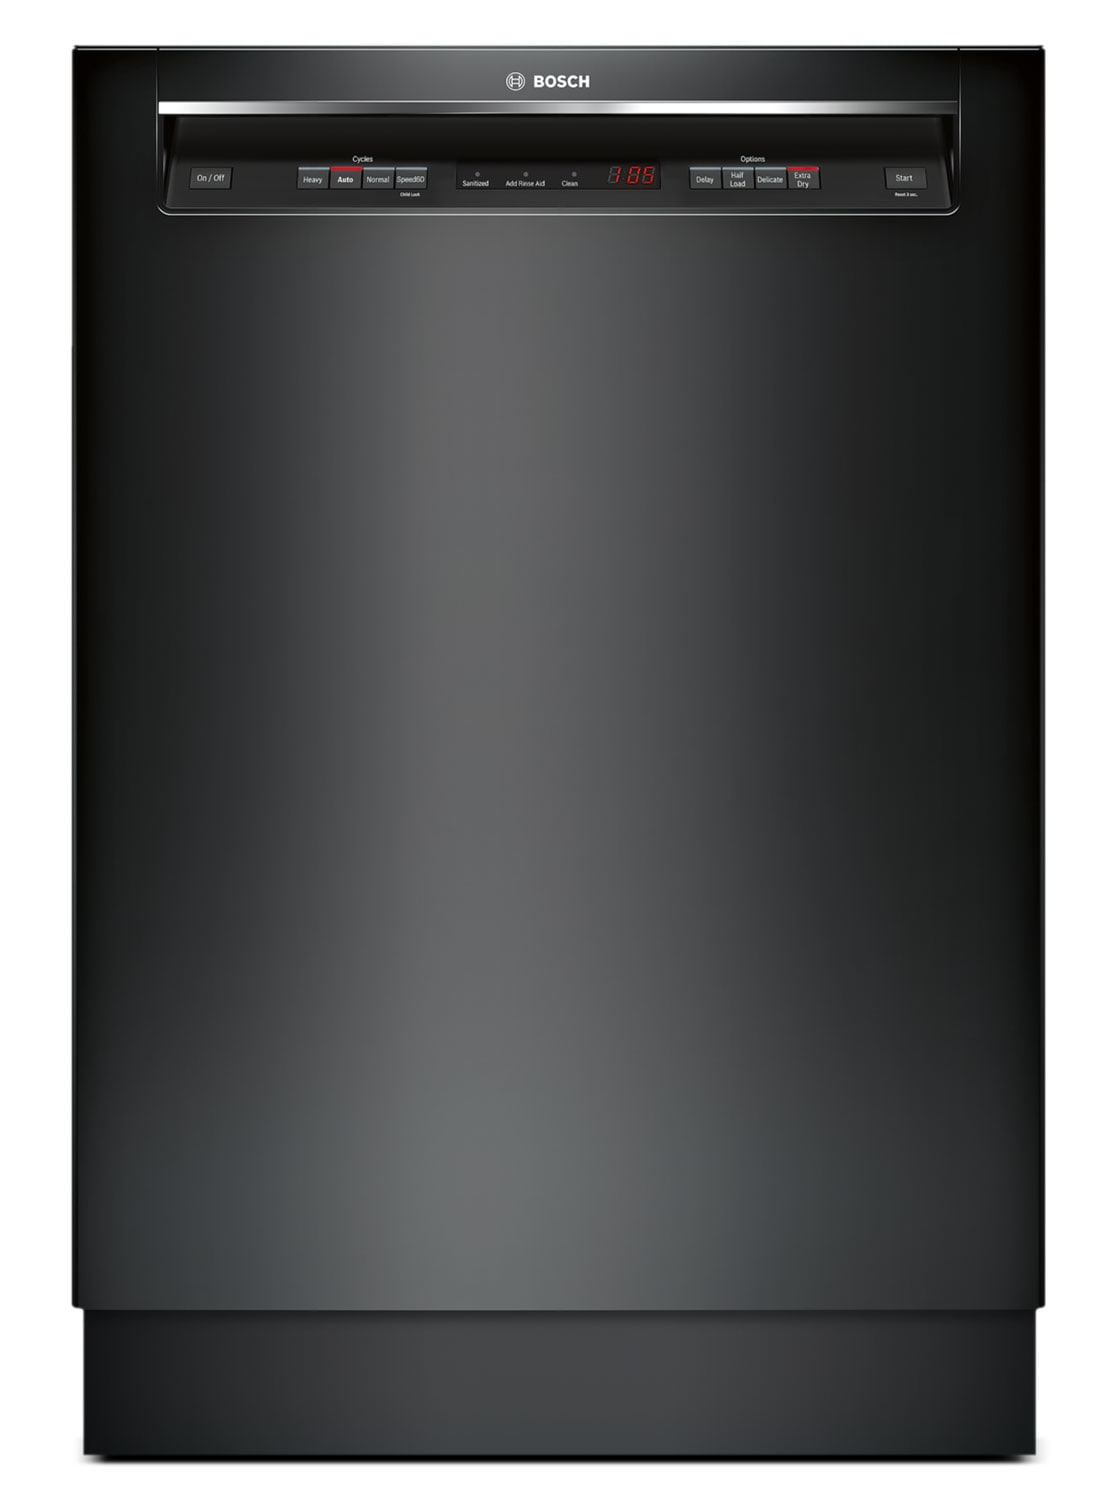 "Clean-Up - Bosch Black 24"" Dishwasher - SHE4AV56UC"